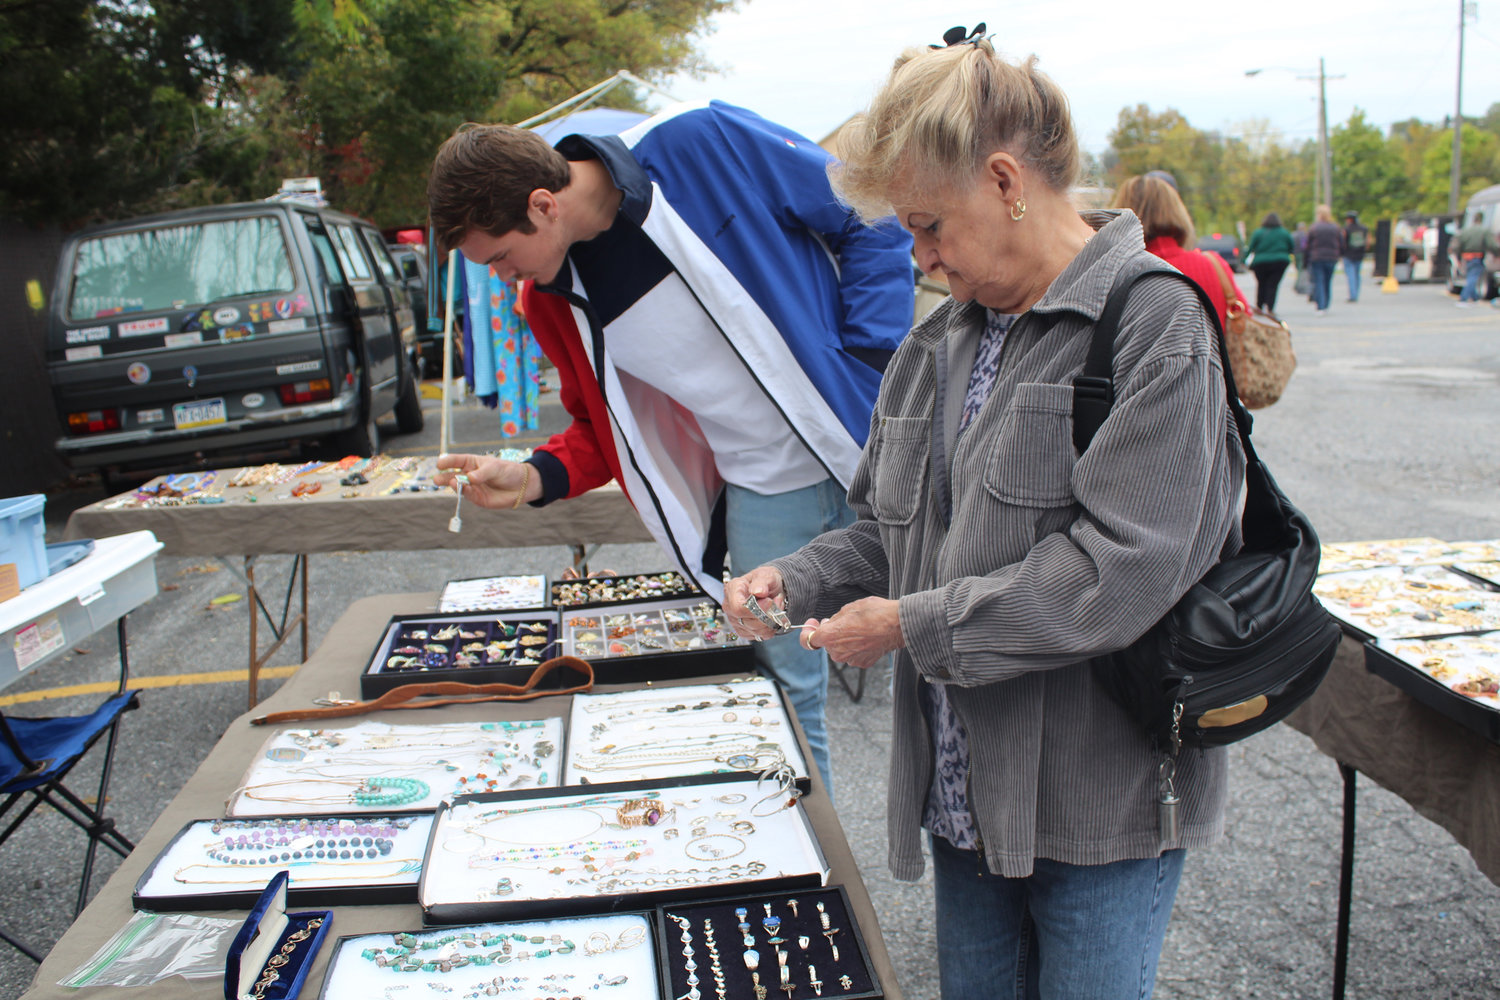 Donn Miller looks at a bracelet at Saturday's Market on Oct. 12.